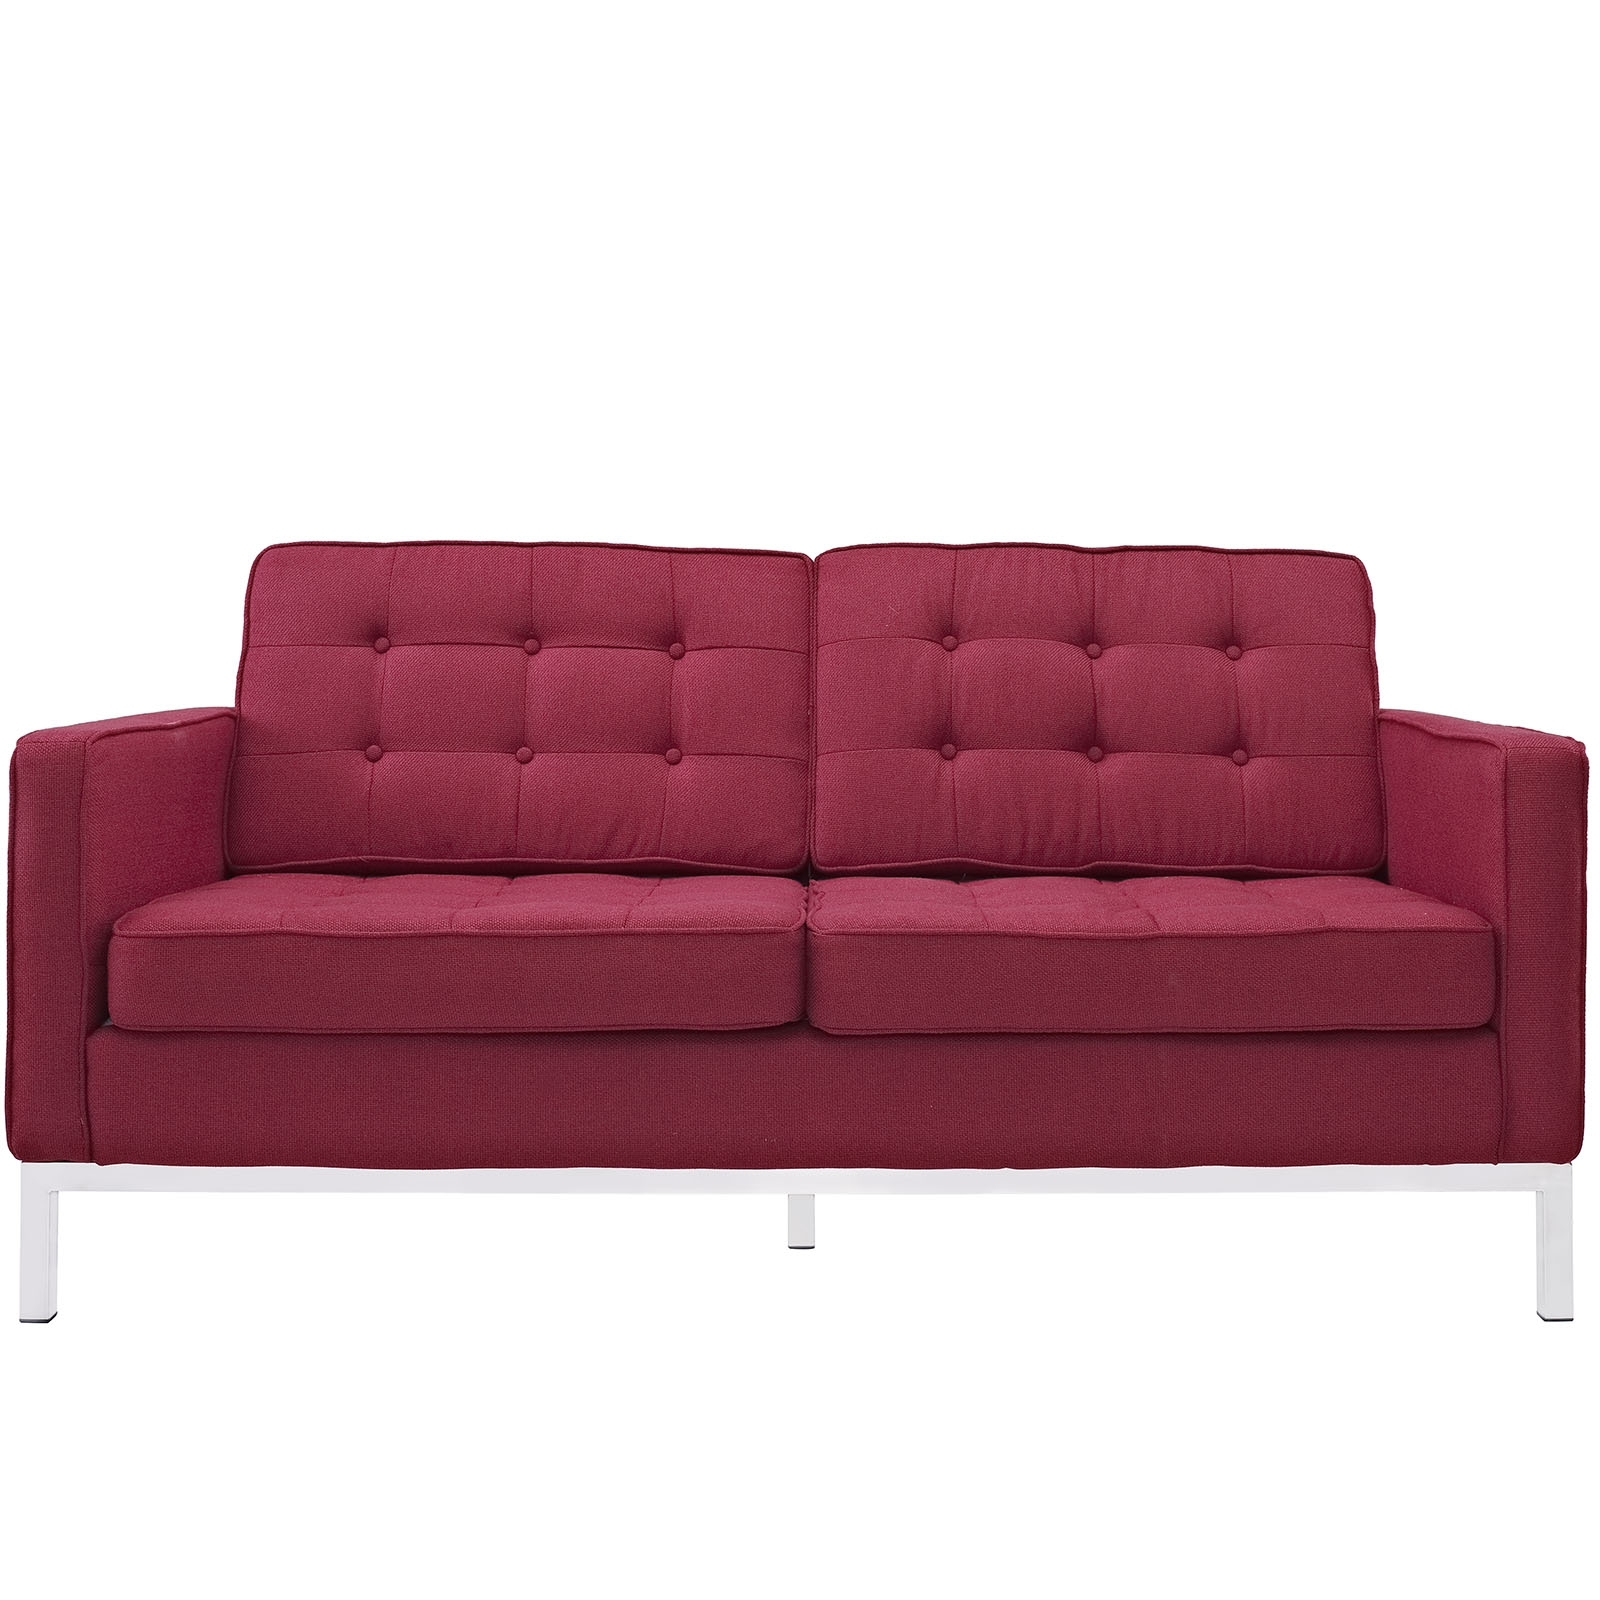 Florence Knoll Style Loveseat Couch – Wool Throughout Latest Florence Knoll Style Sofas (View 14 of 20)